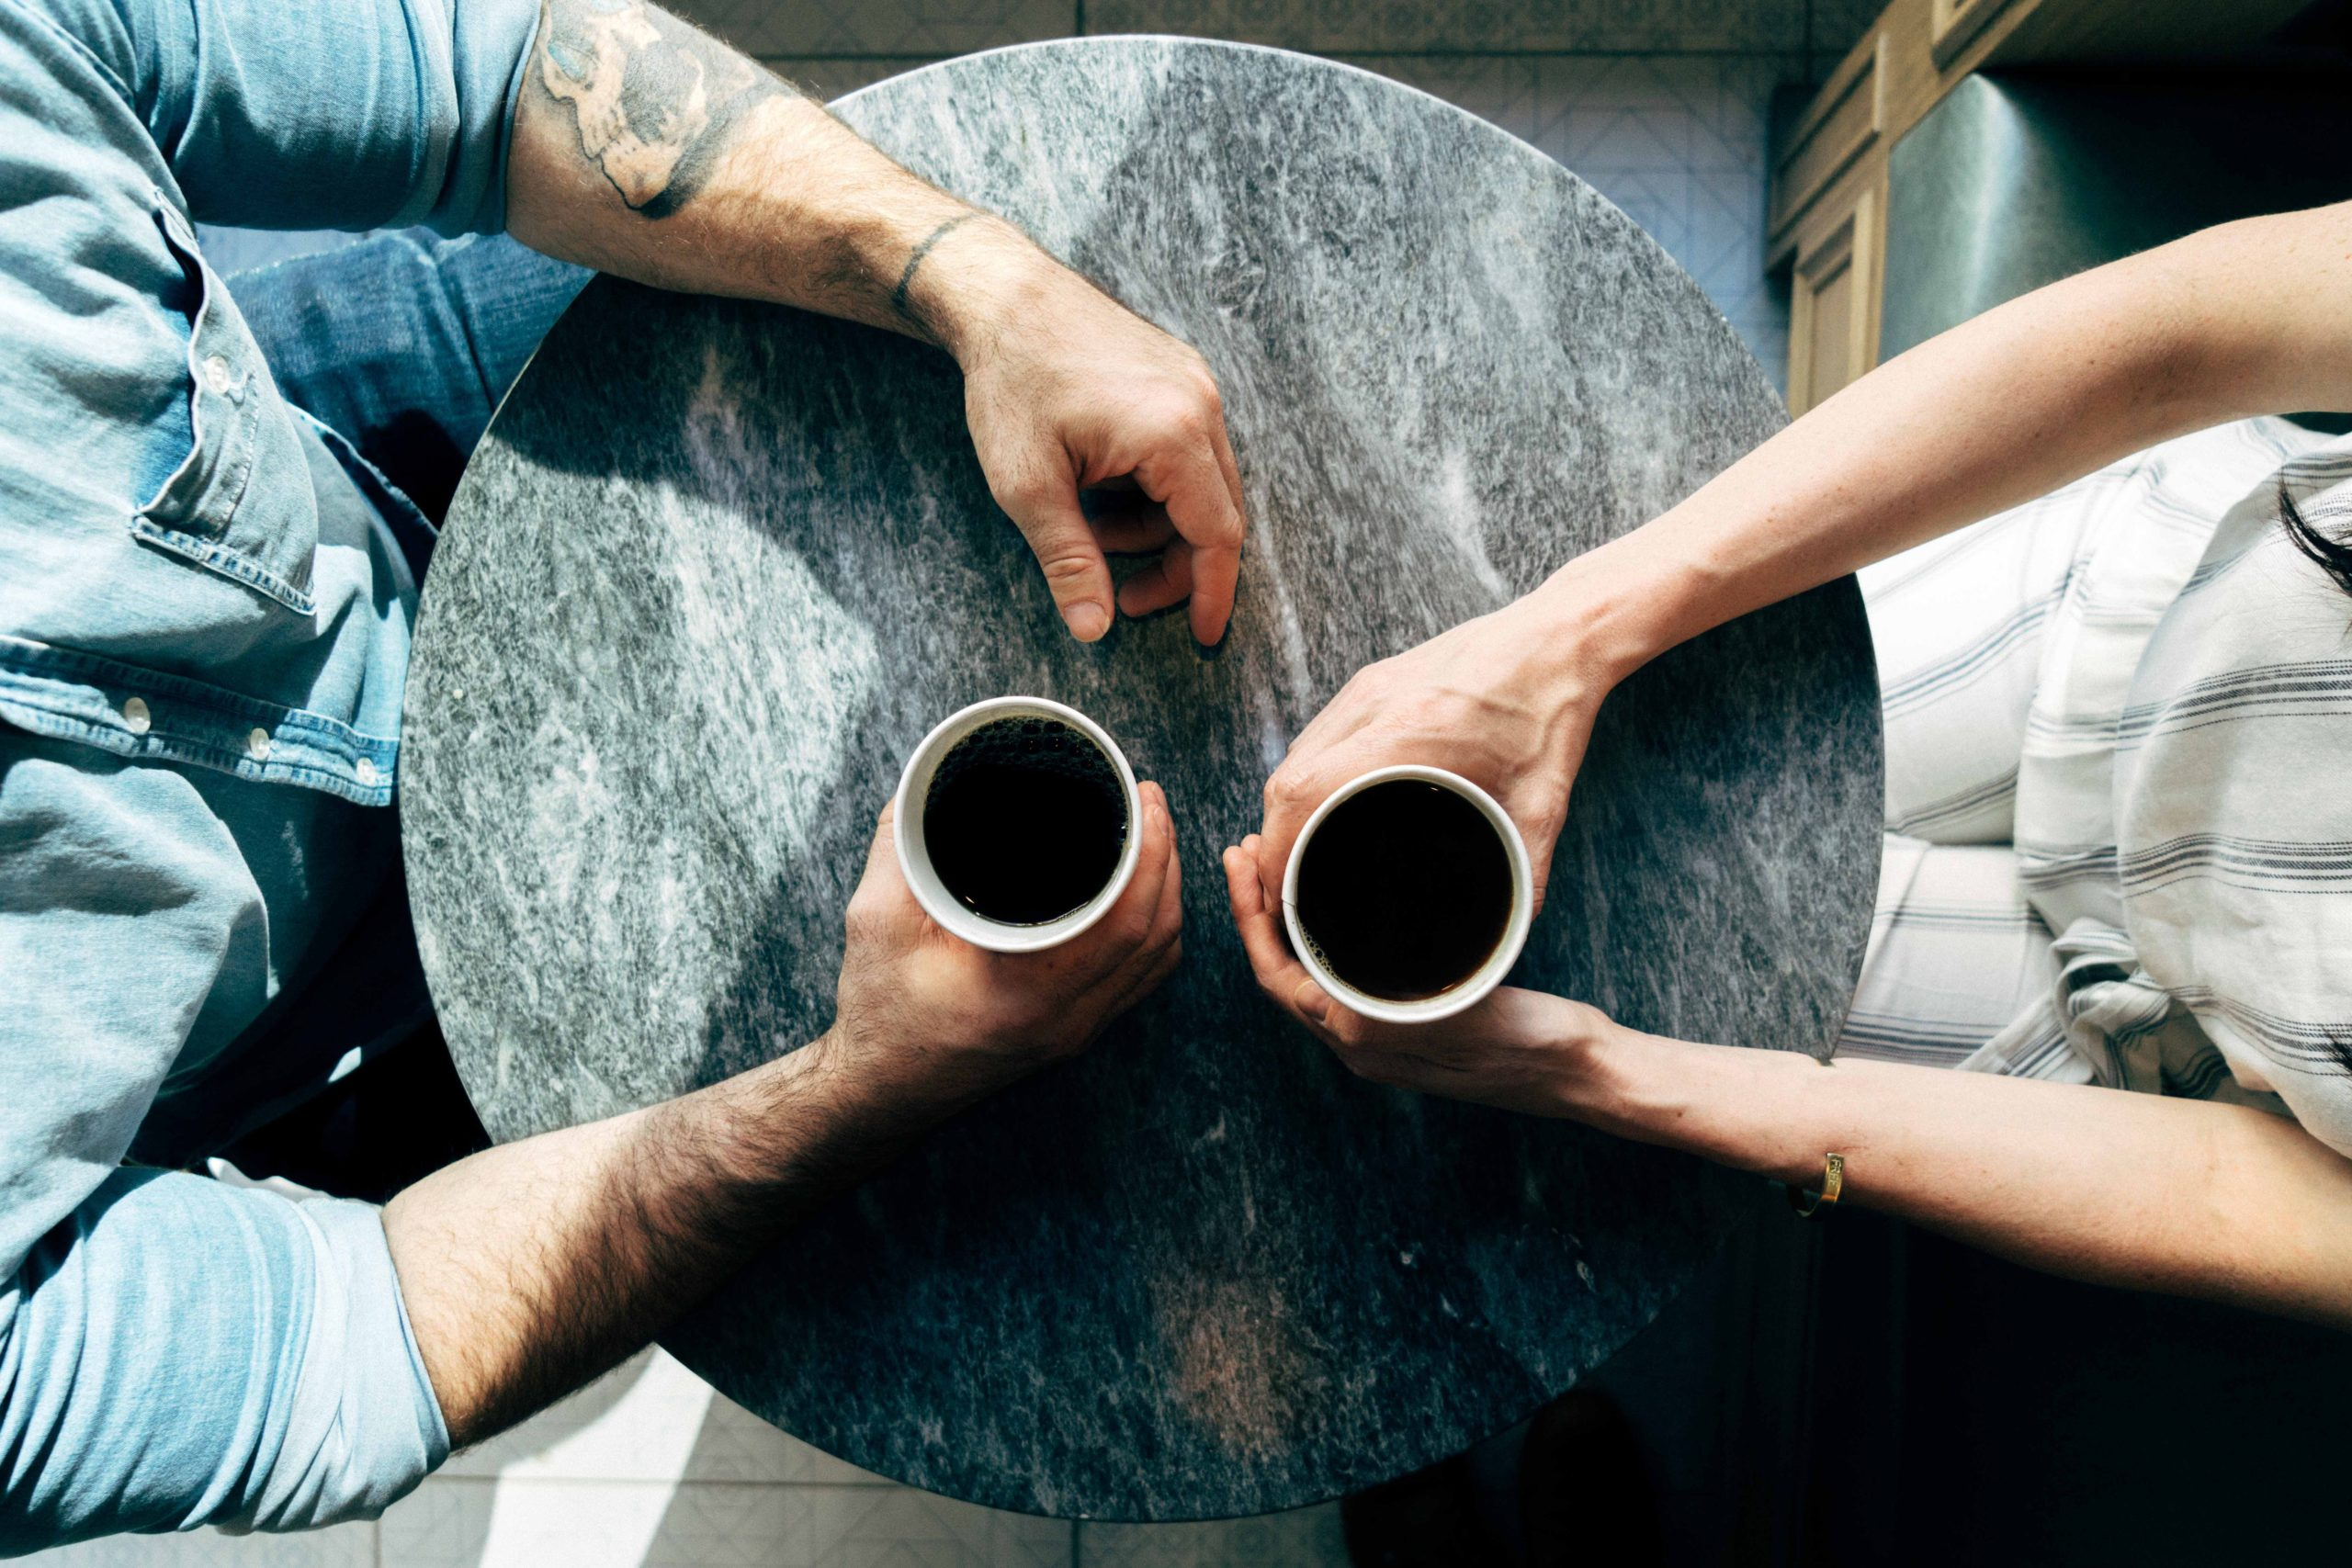 shot from above of two people holding coffees sitting at a table